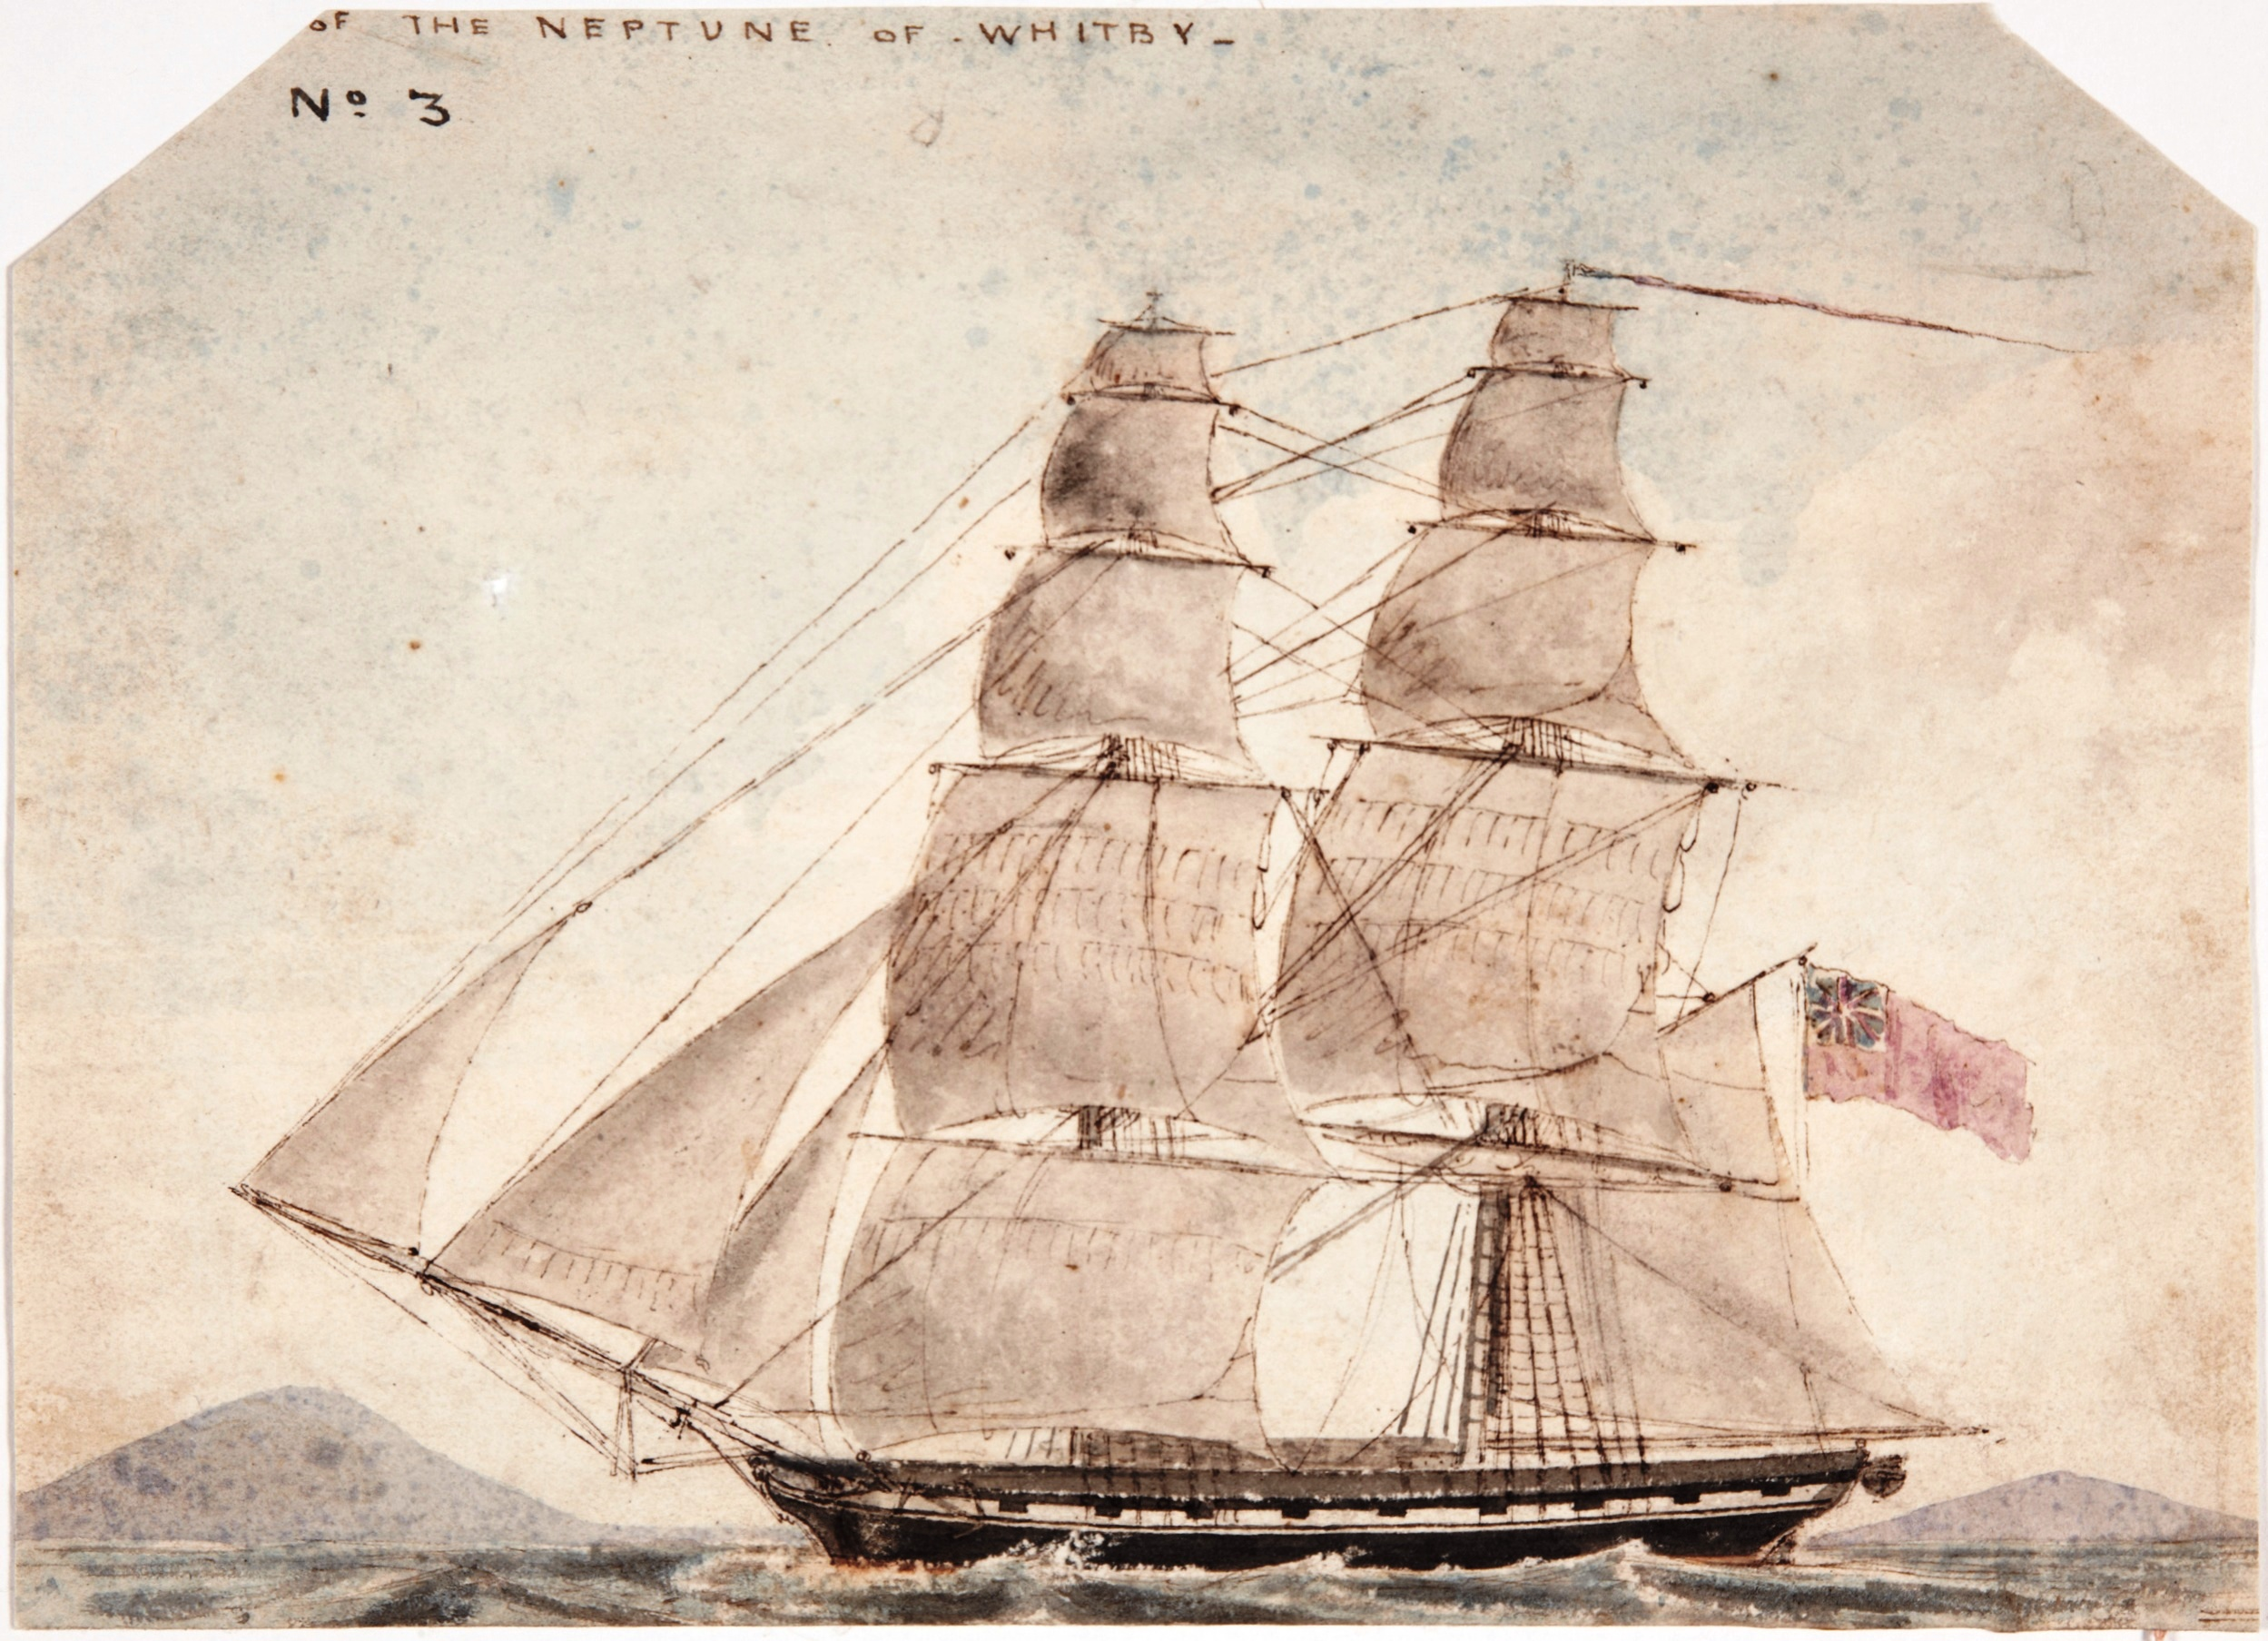 No. 3 Sketch of the Neptune of Whitby / Edmund Pink / 3 February 1820